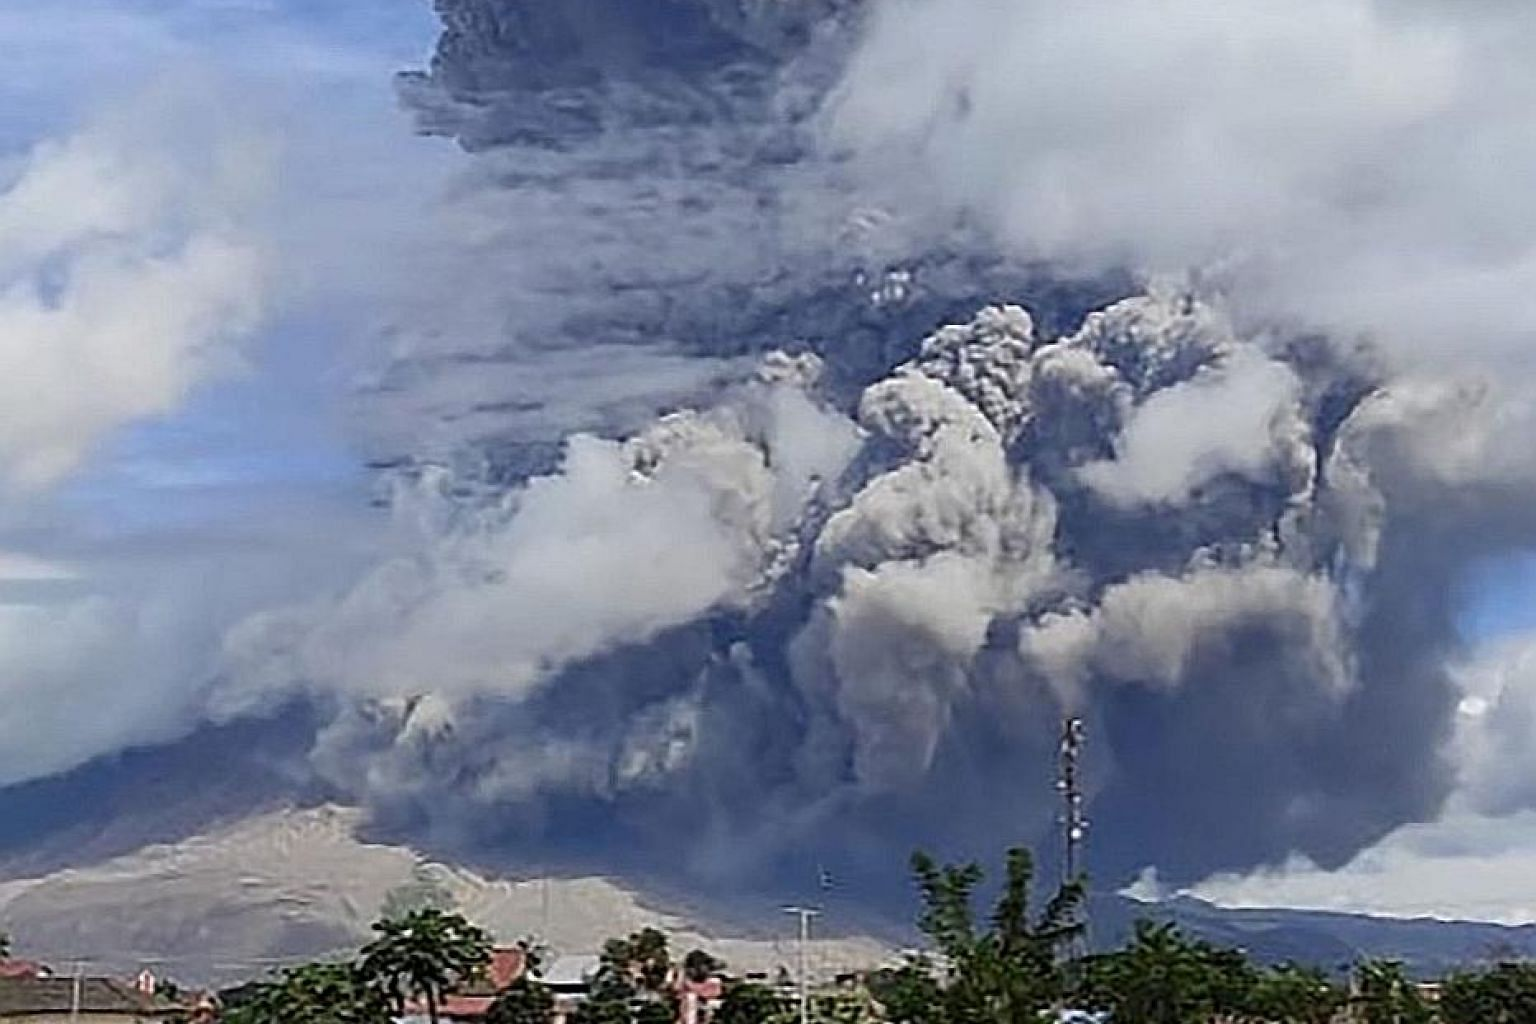 Mount Sinabung erupting yesterday. No casualties have been reported and a spokesman for the civil aviation authority said flights were still operating in the region.